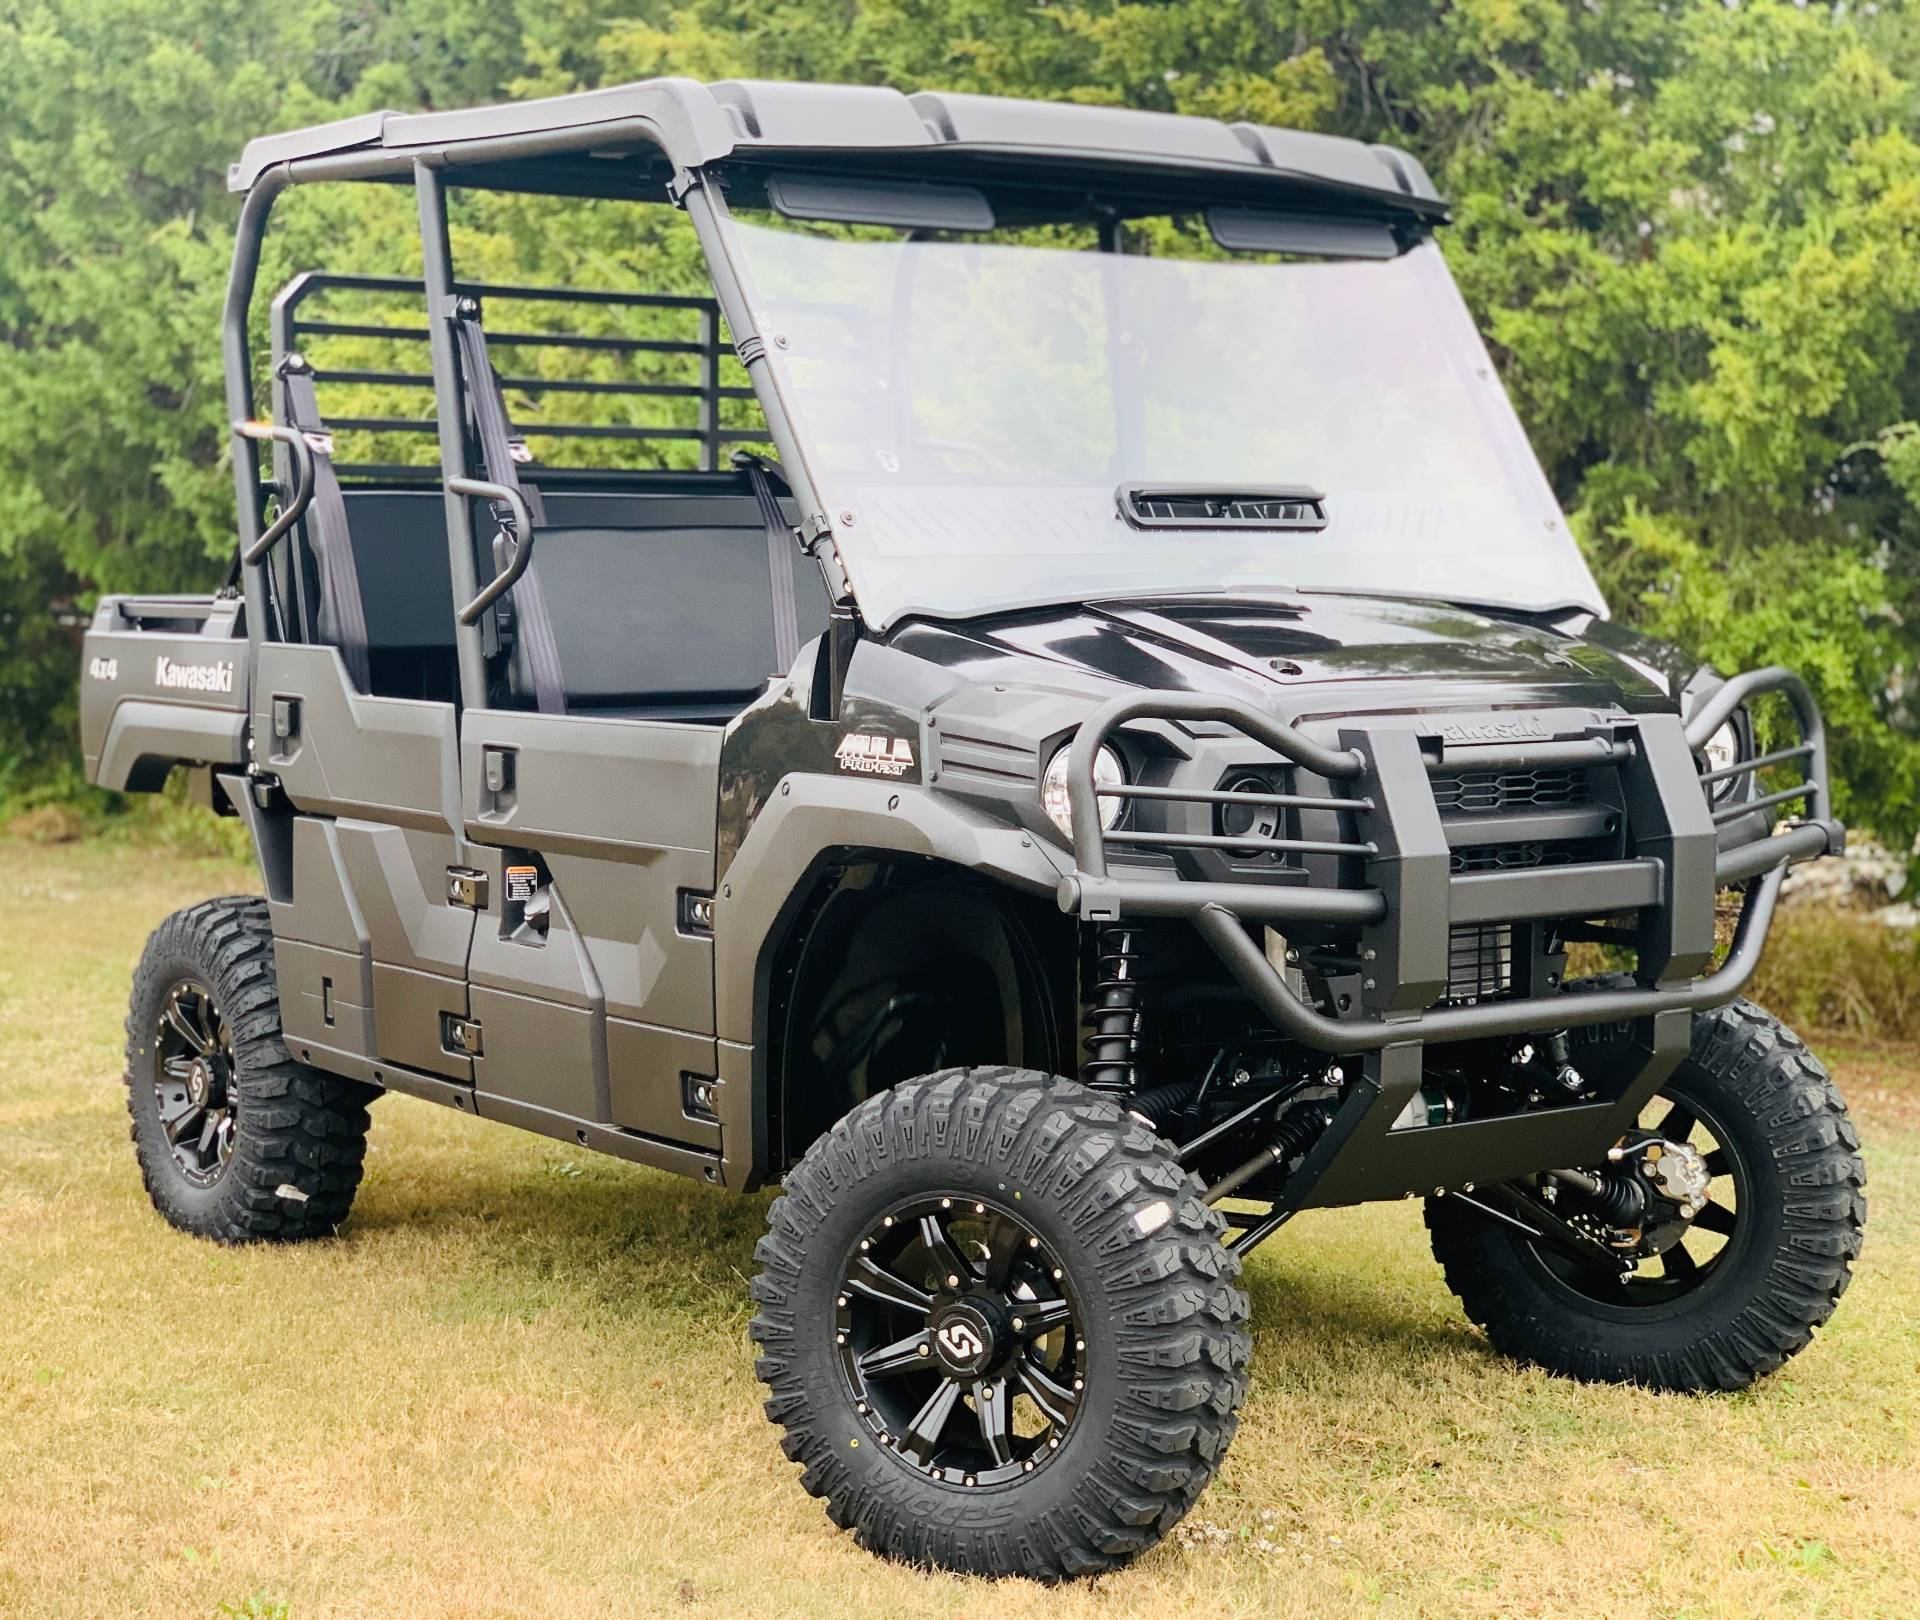 2020 Kawasaki Mule PRO-FXT in Plano, Texas - Photo 1